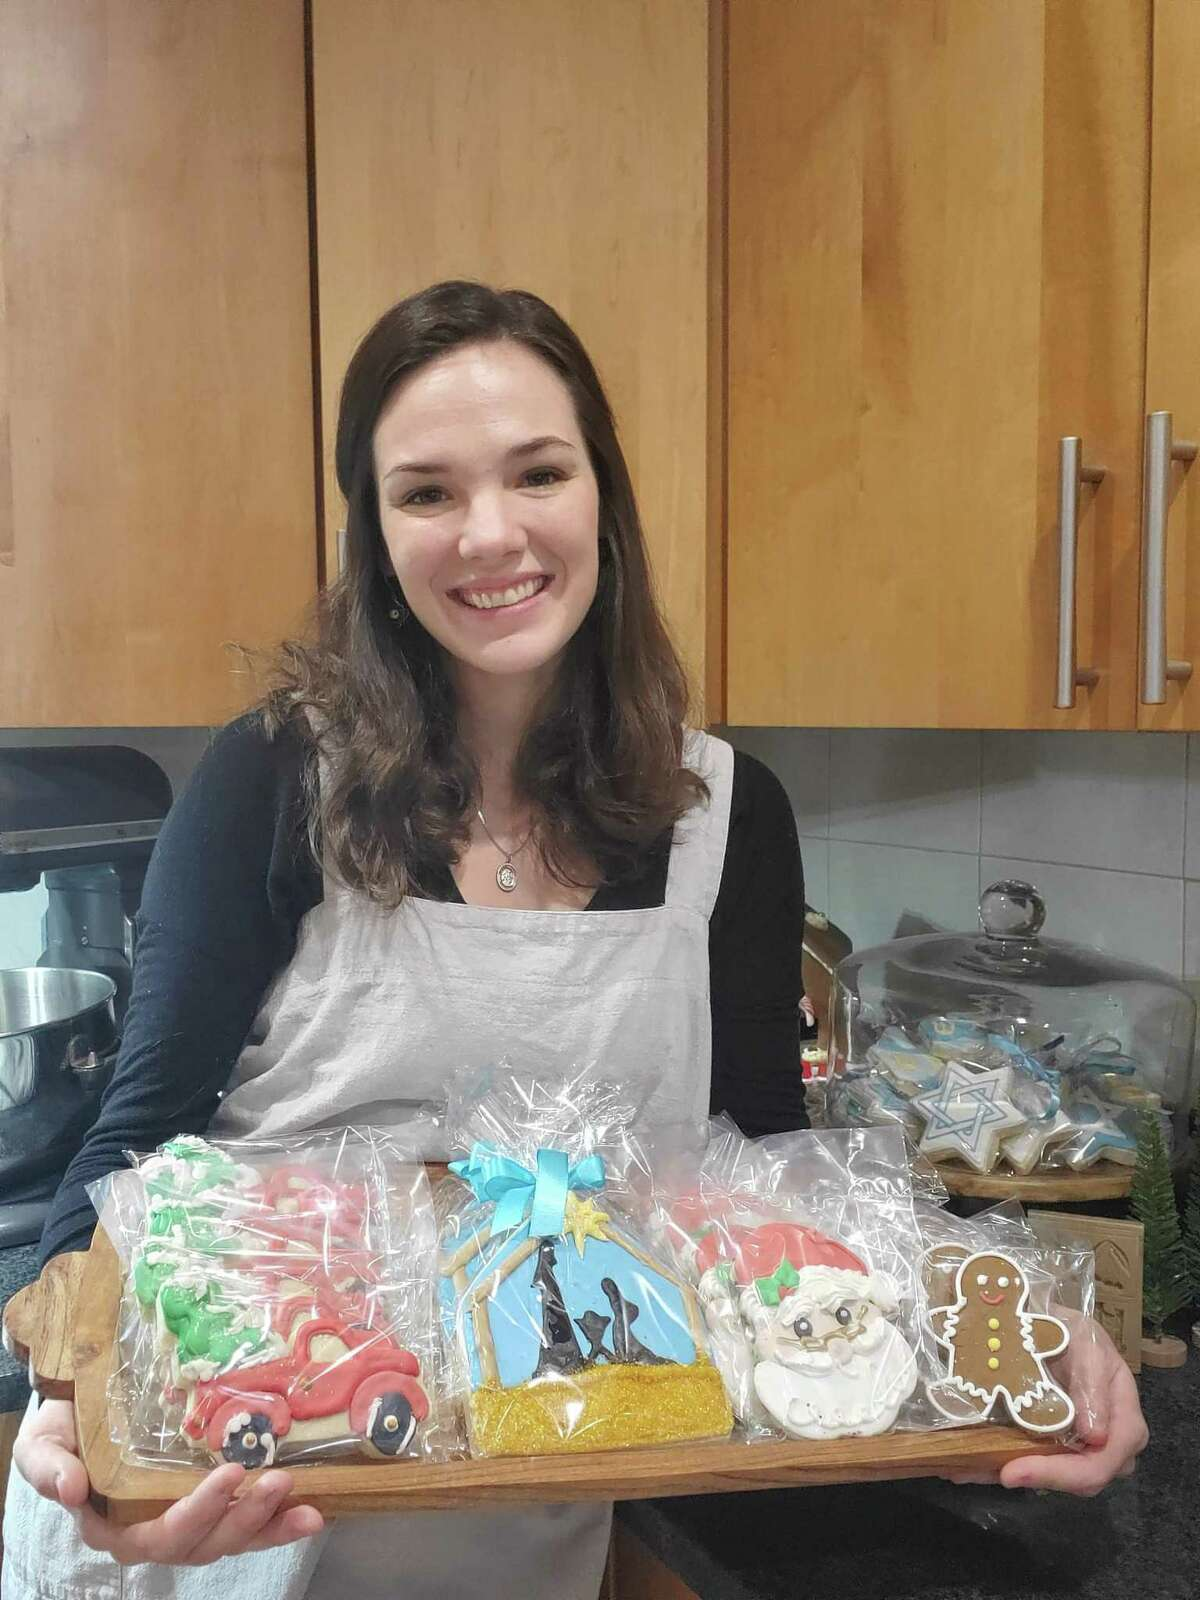 Emily DeCruze of Trumbull is hoping a holiday cookie order signals a long-term relationship between online retailer Amazon.com and local small businesses.